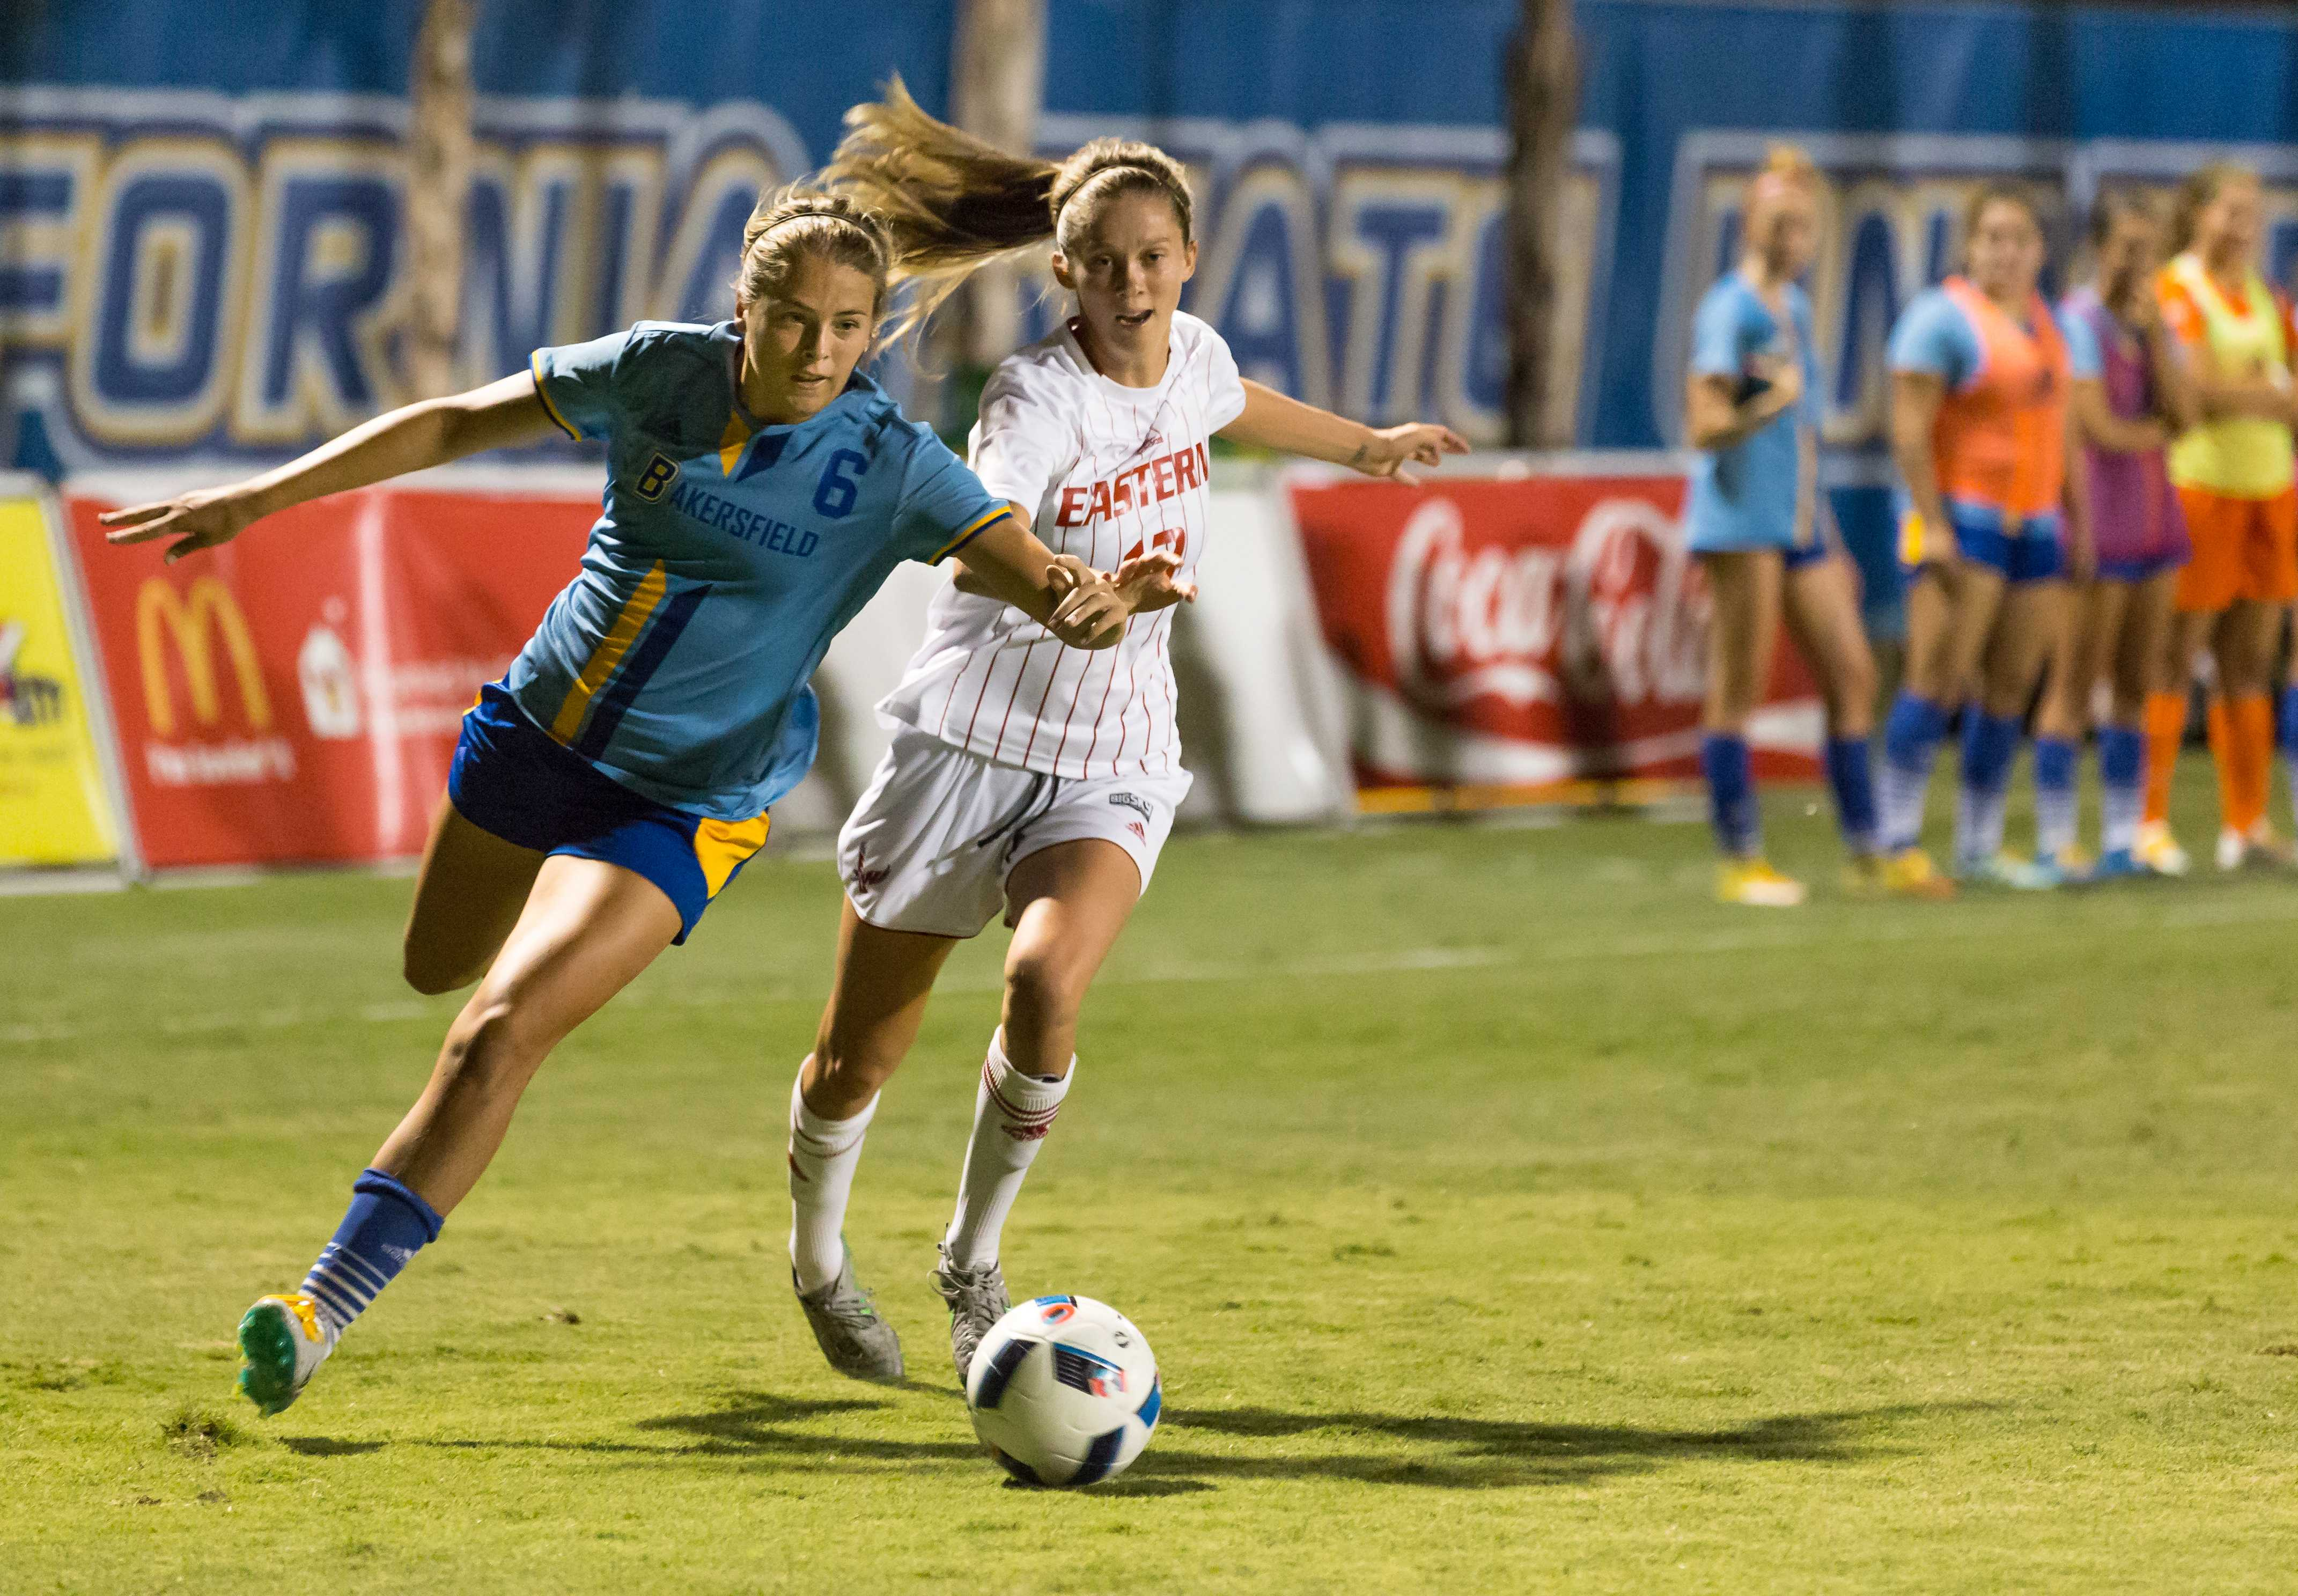 CSUB clinches second seed in WAC tourney